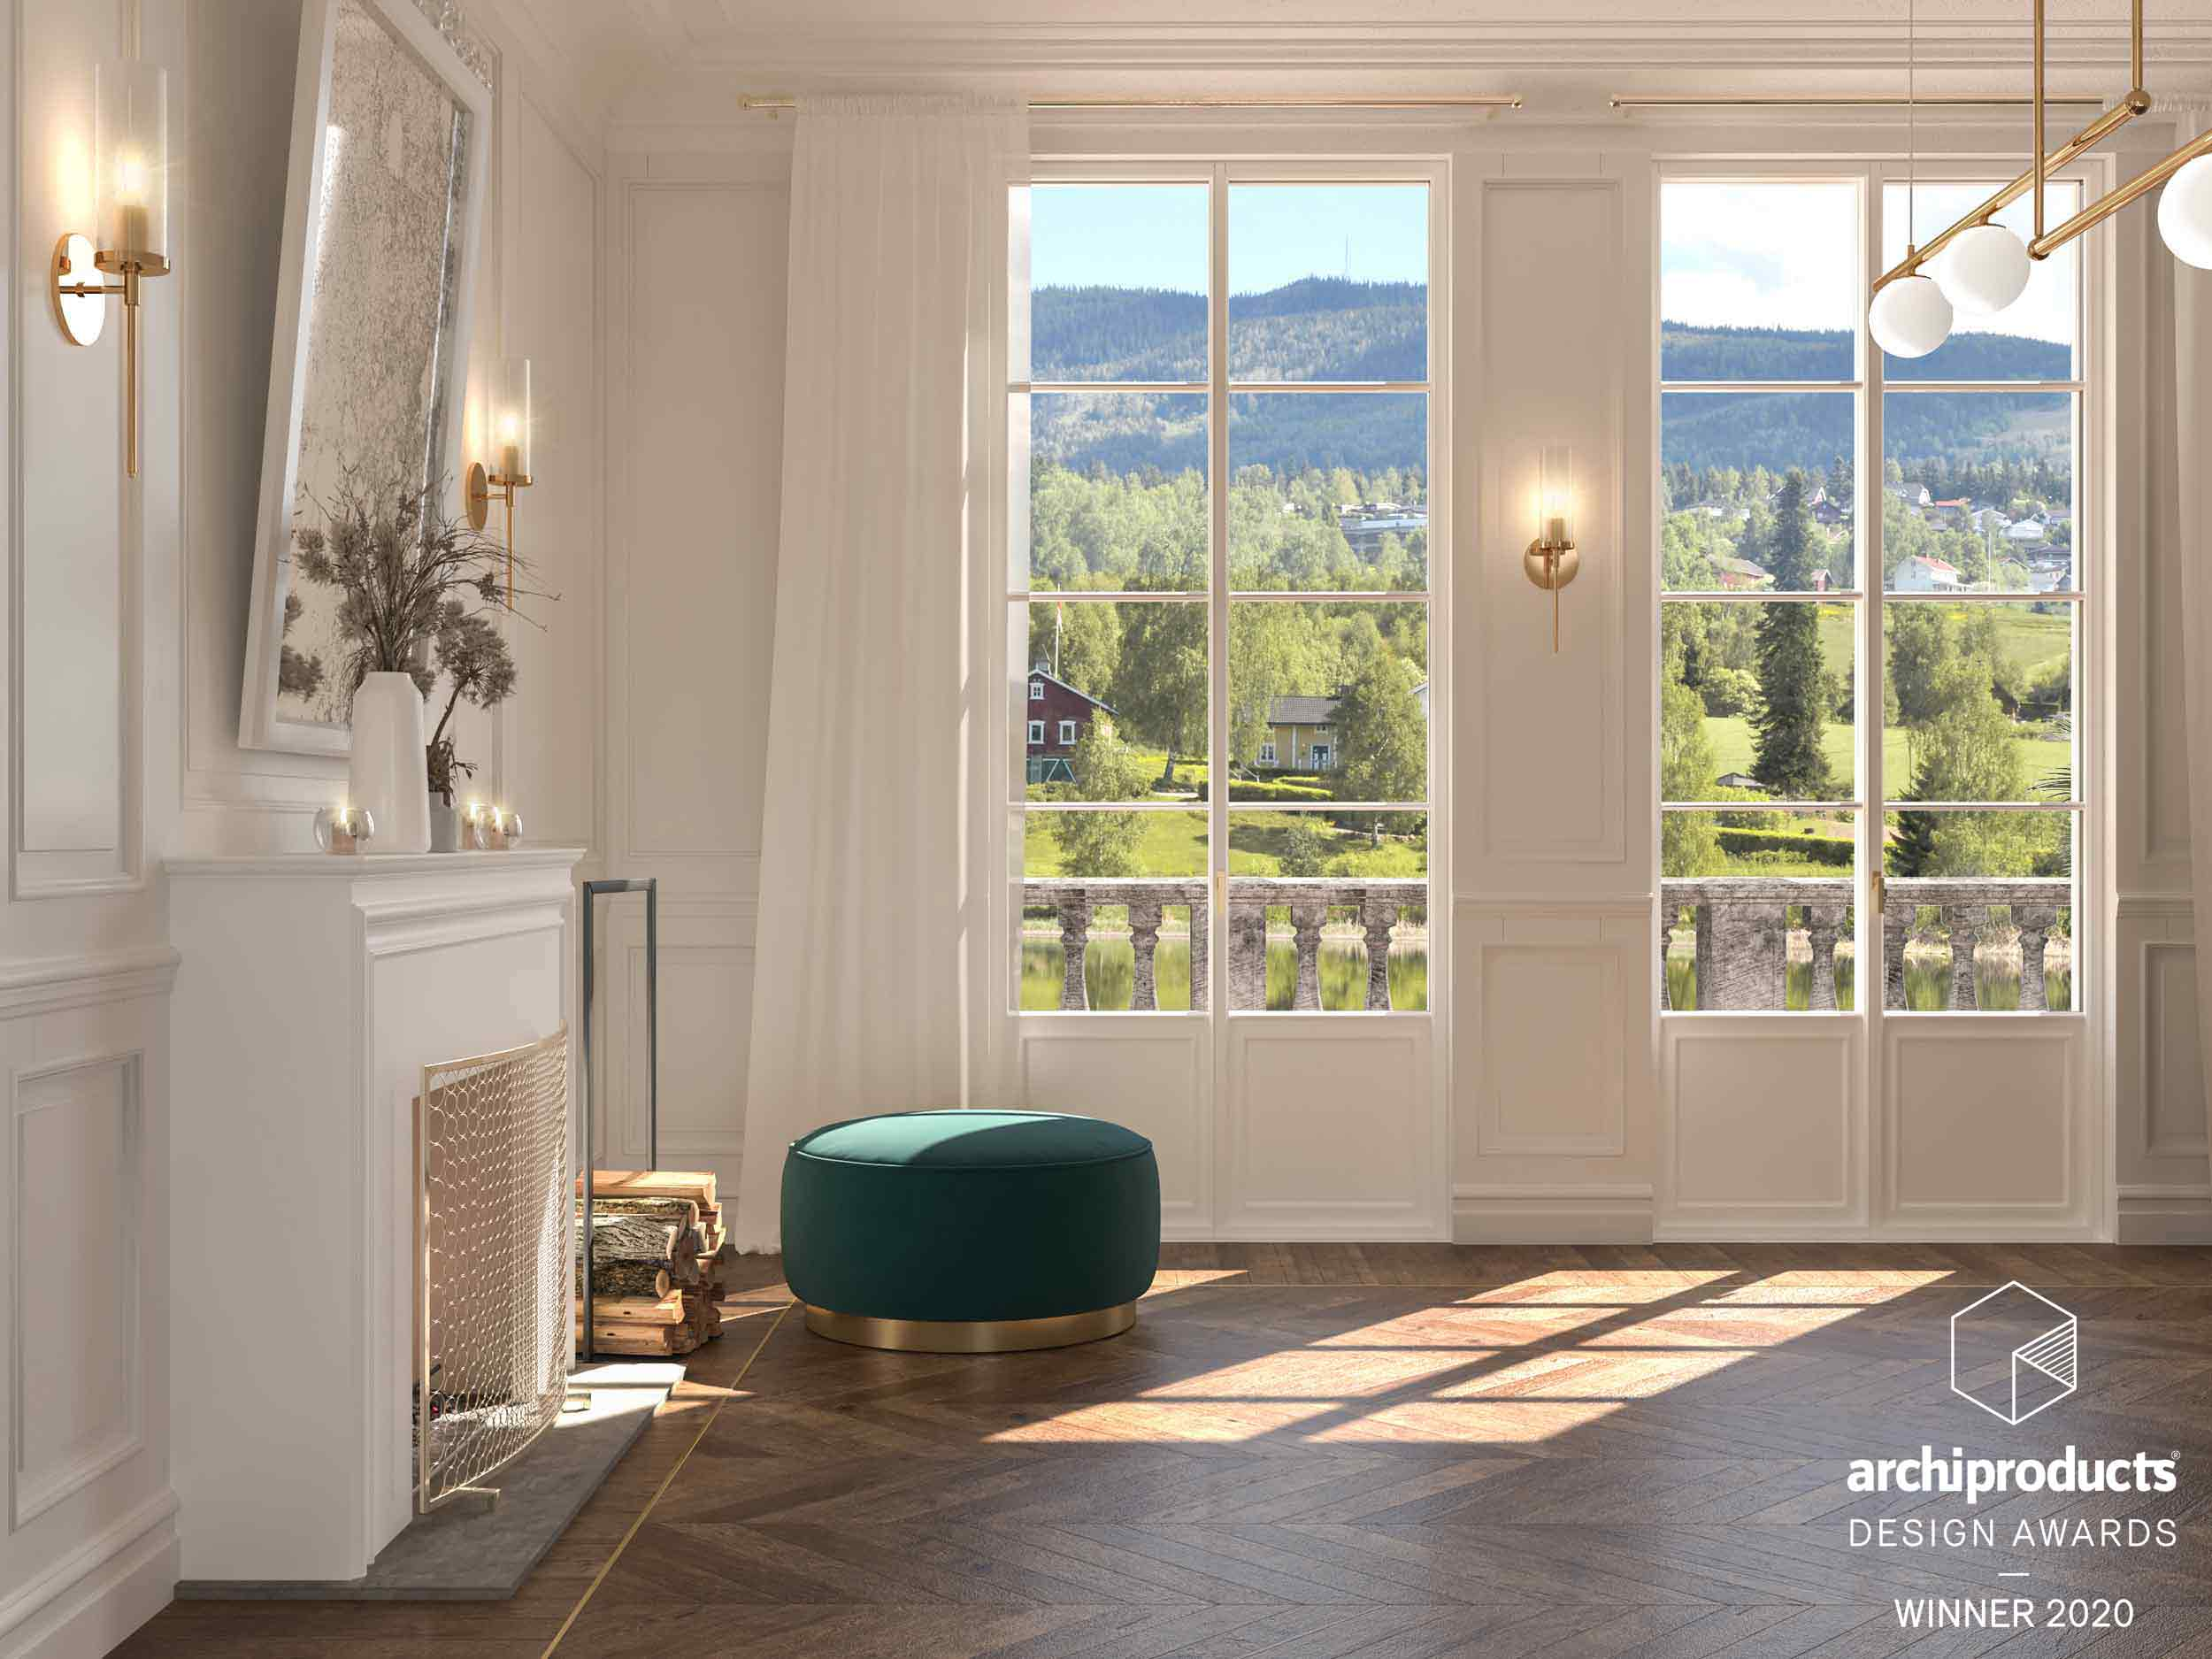 View of an interior with Skyline Classic double-leaf balcony doors with inglesine